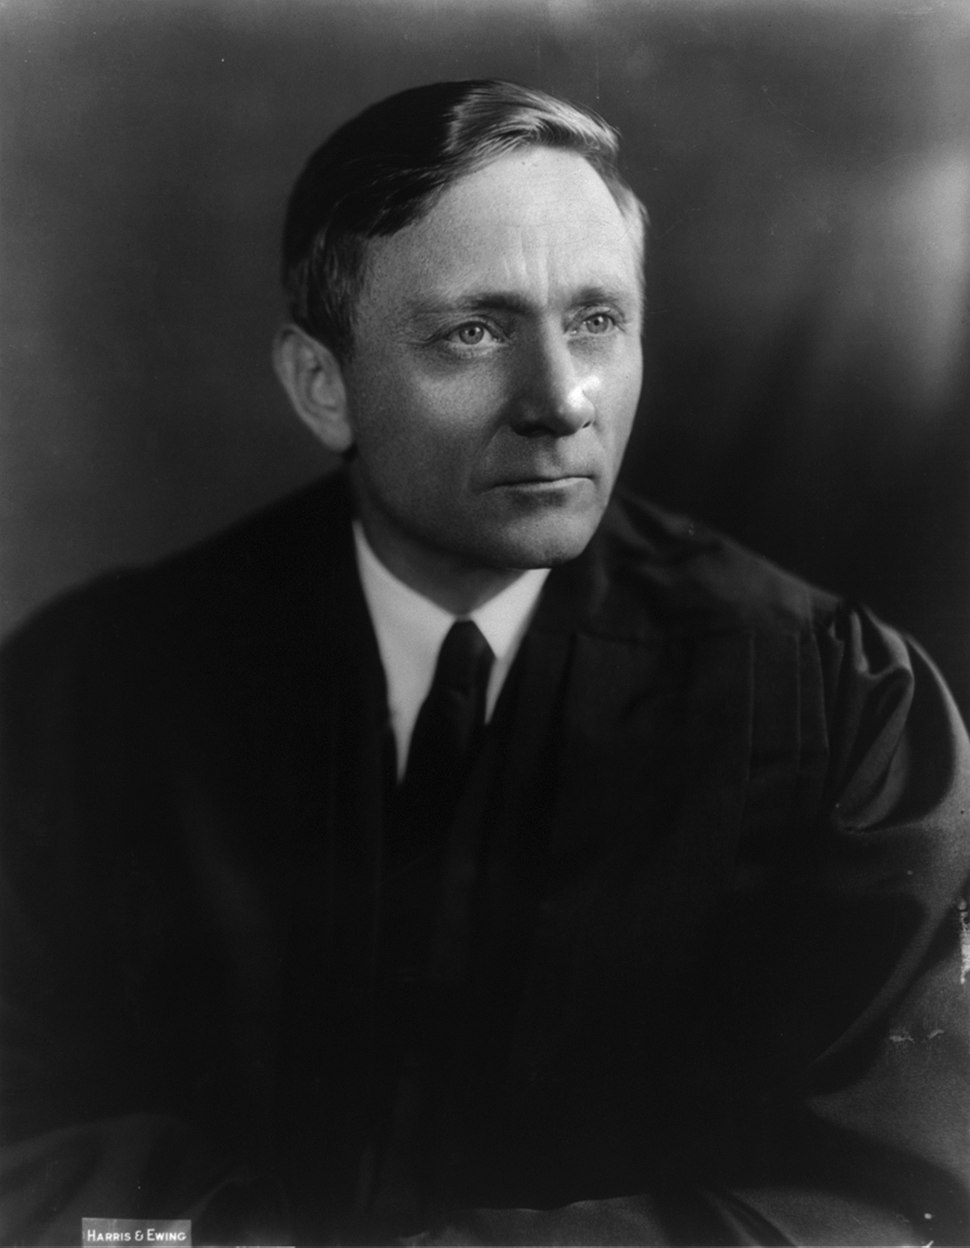 Justice William O Douglas